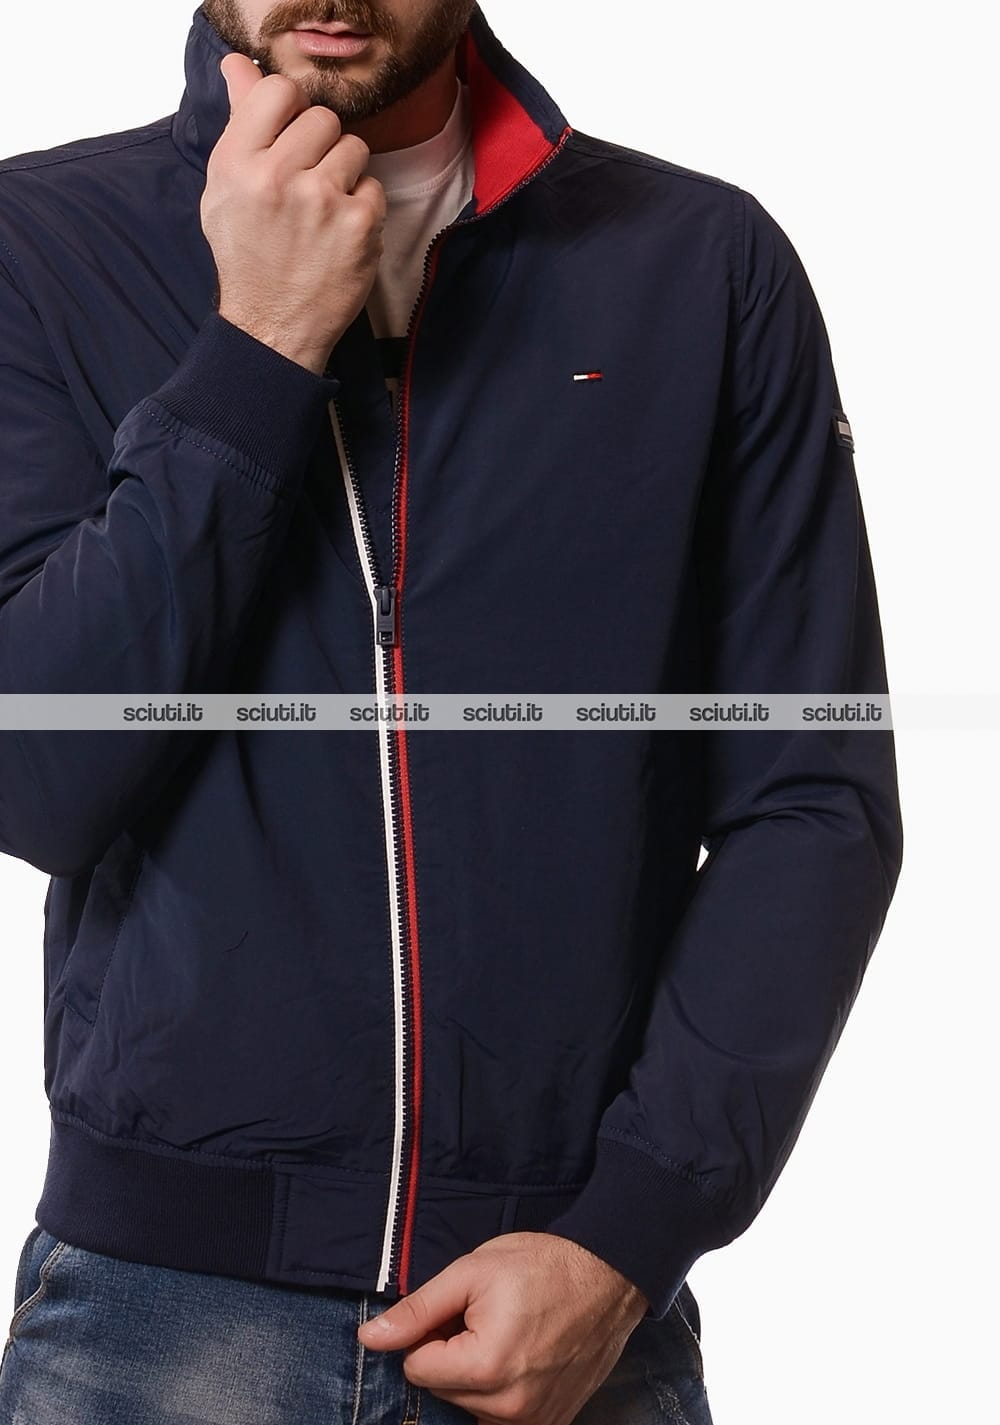 Giubbotto Tommy Hilfiger uomo bomber blu scuro | Sciuti.it